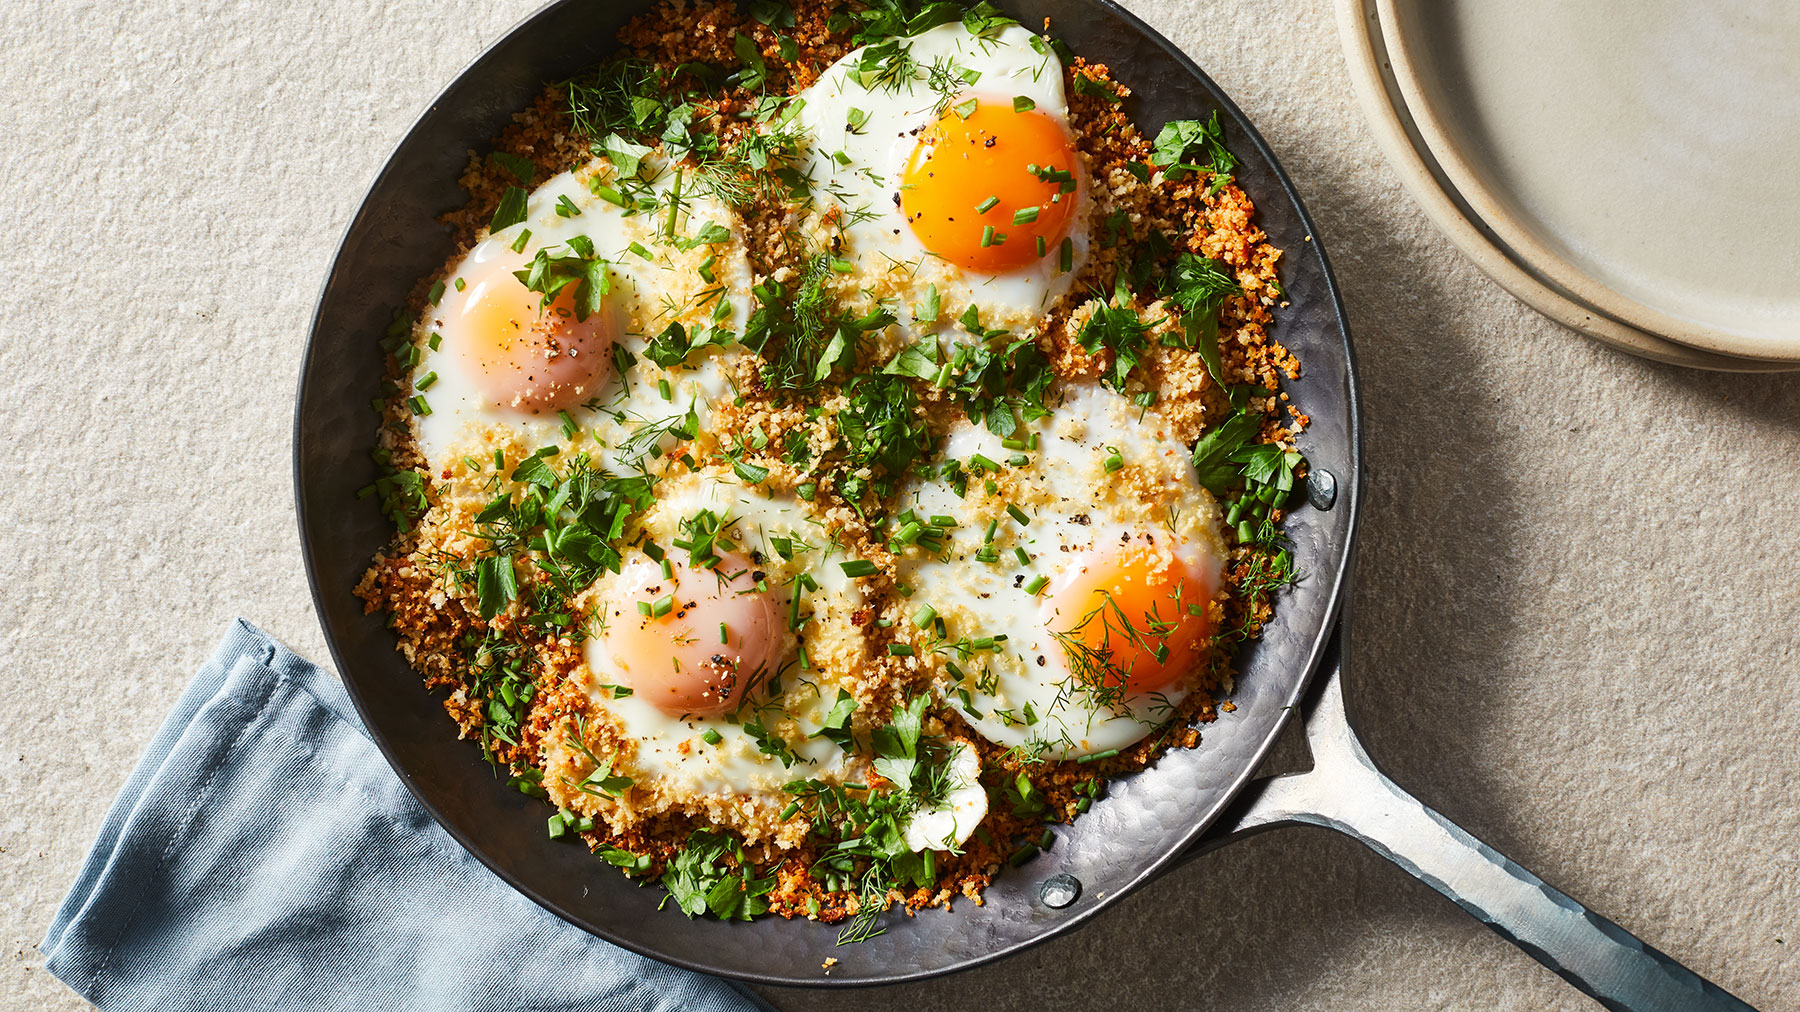 Breakfast ideas with eggs - Crunchy Skillet Eggs With Herbs